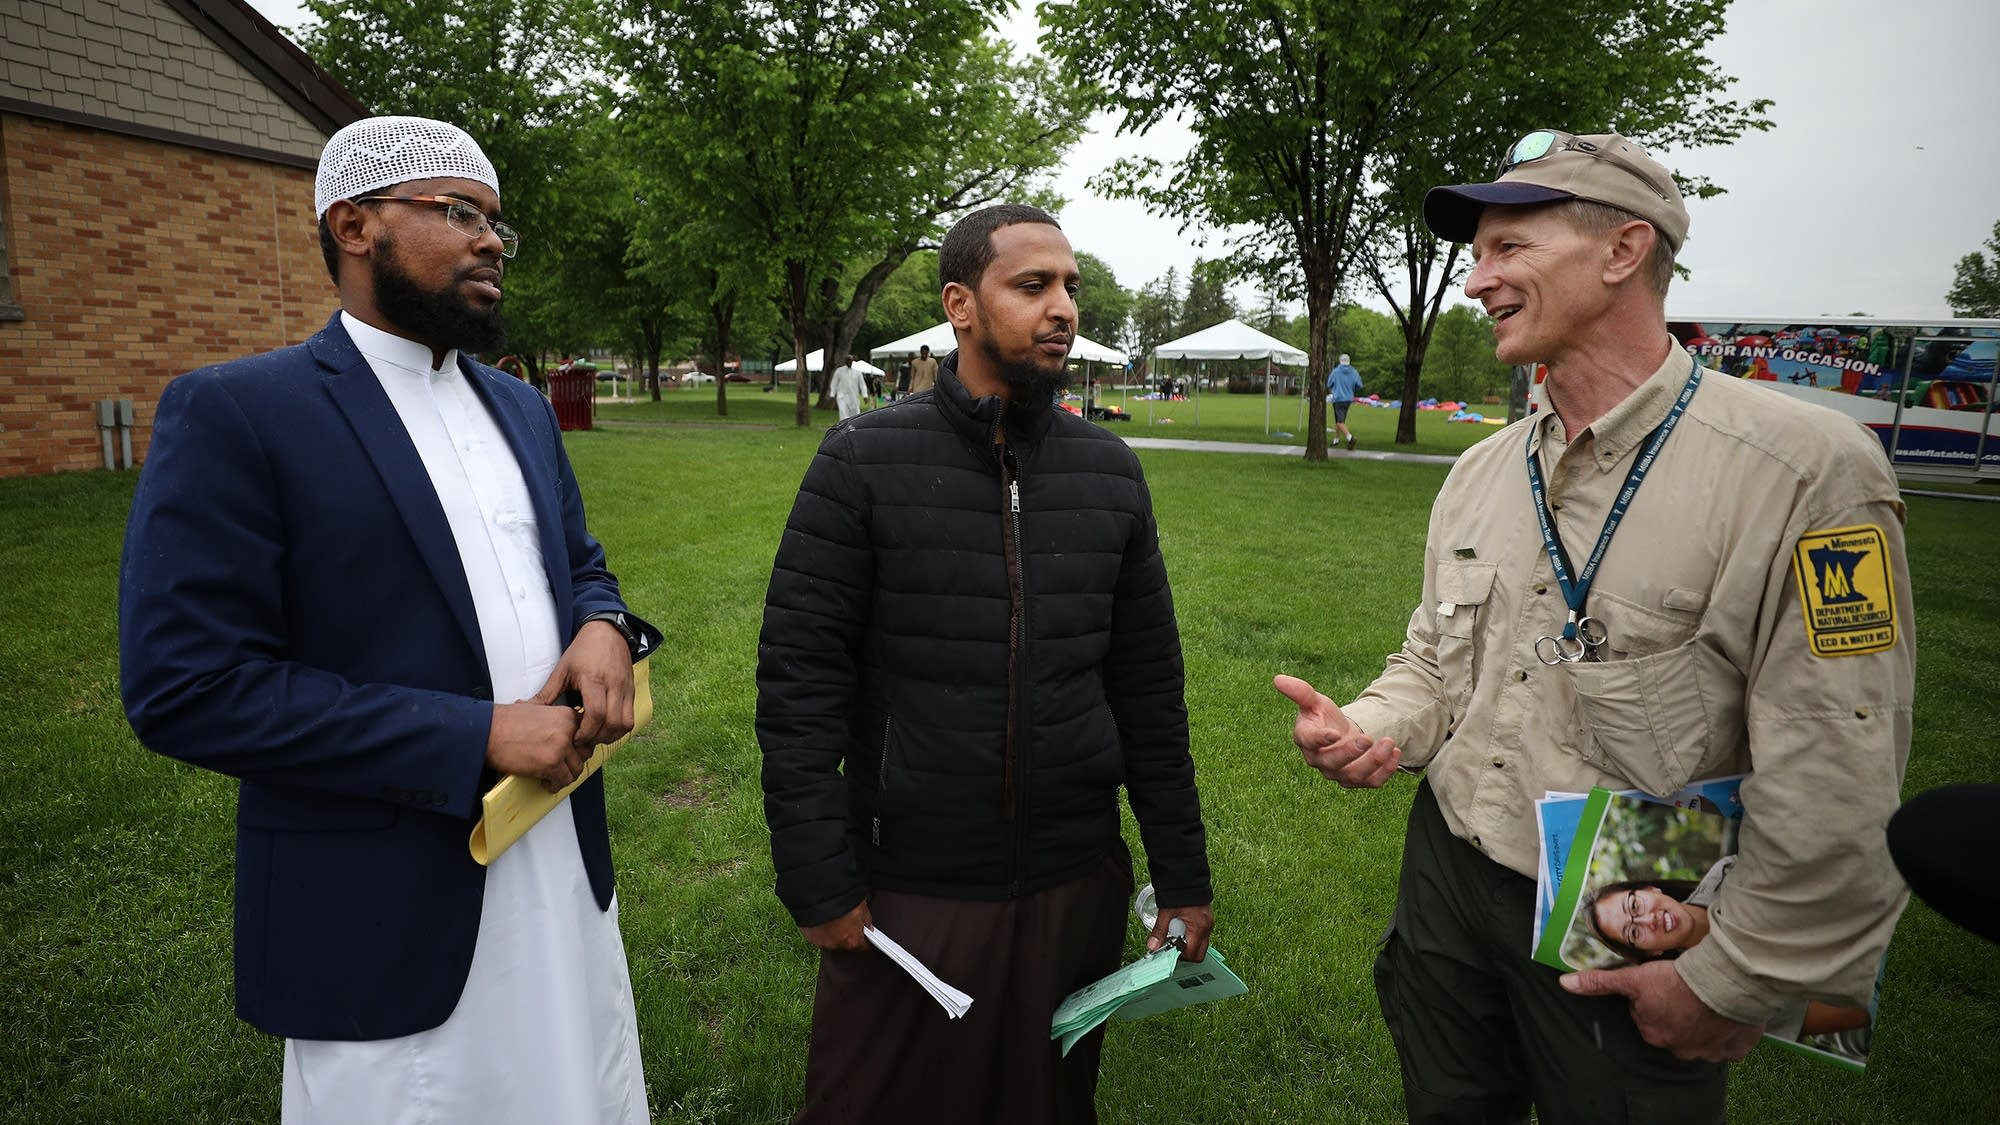 From left, Ahmed Hassan and Mohayadin Mohamed listen to Mark Hauck from the DNR talk about outdoor recreational activities. <br>Paul Middlestaedt for MPR News